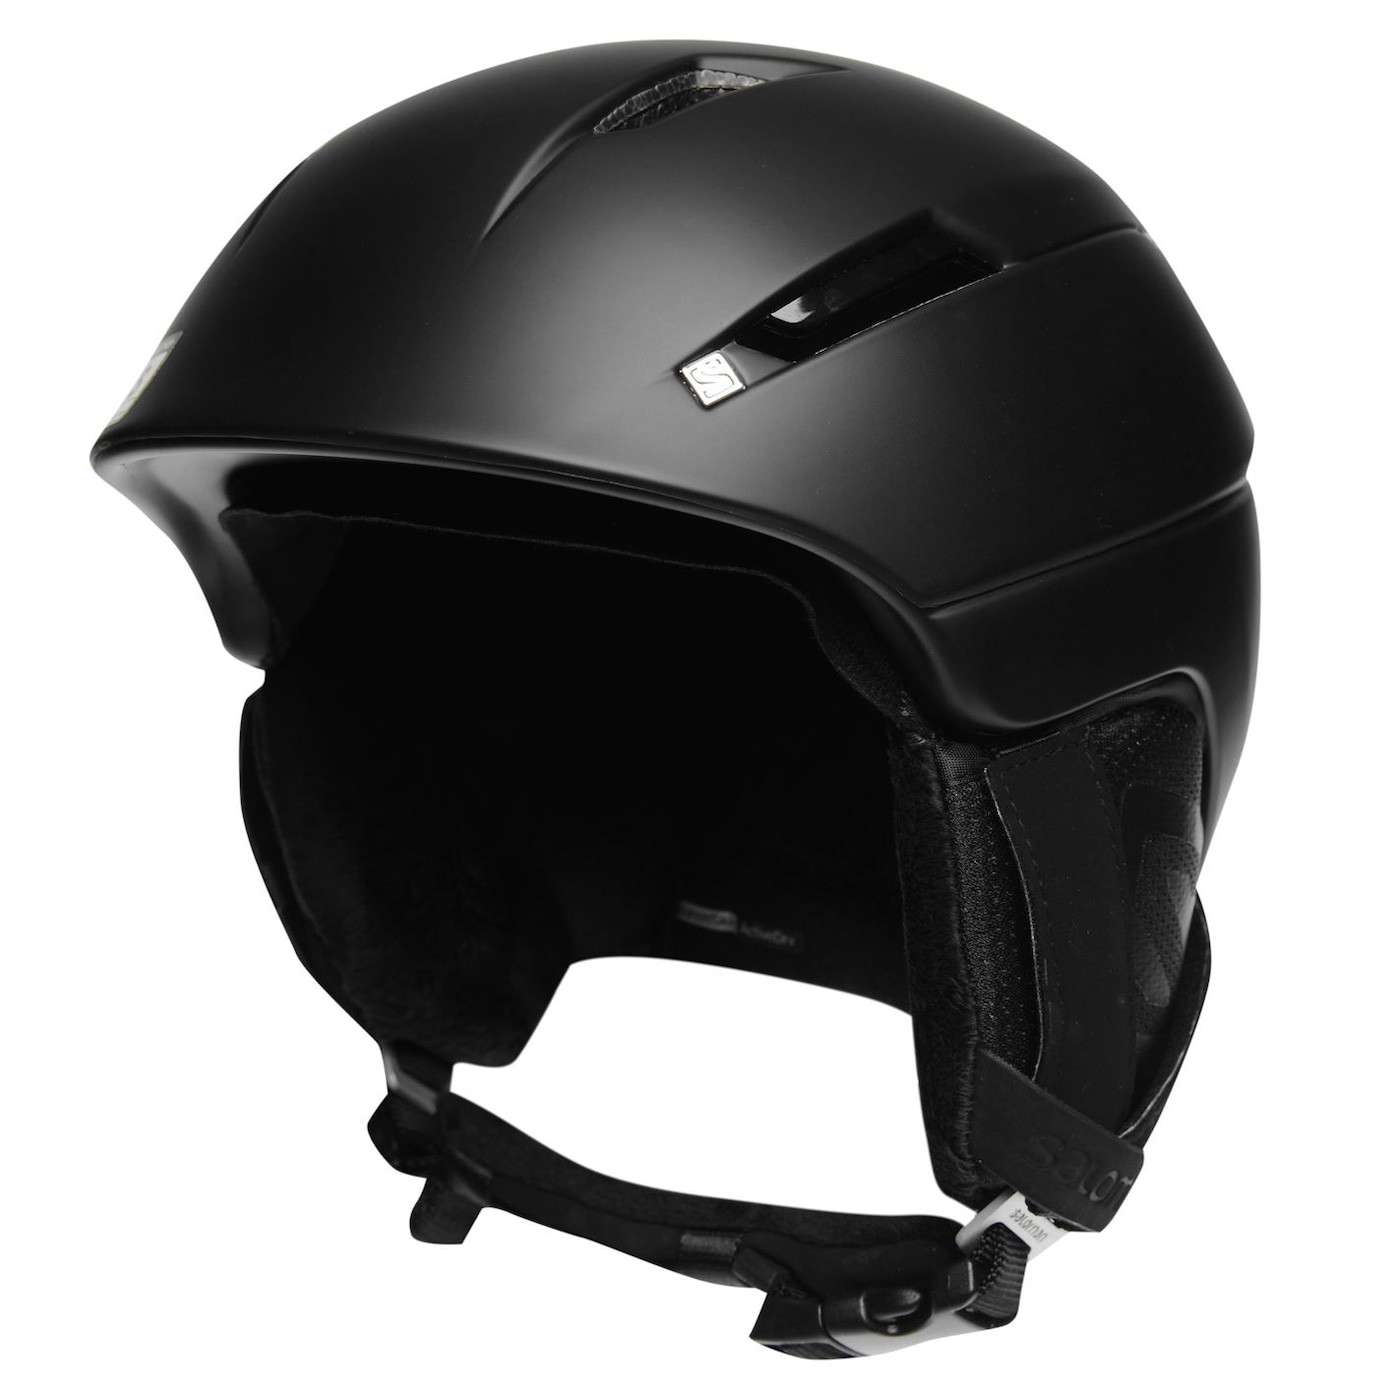 fd94a2912 Salomon Ranger C Air Mens Ski Helmet